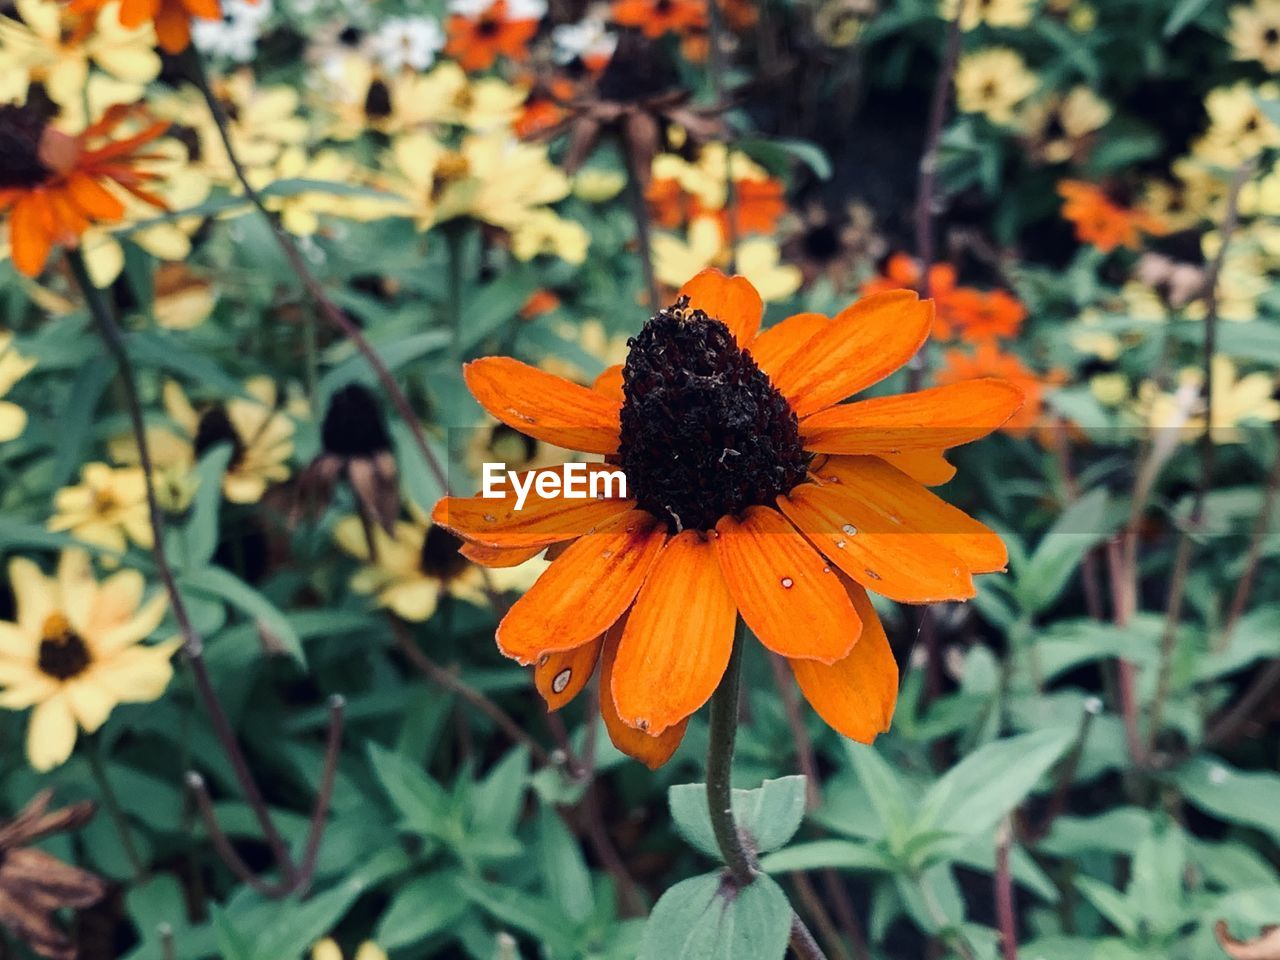 CLOSE-UP OF ORANGE DAISY